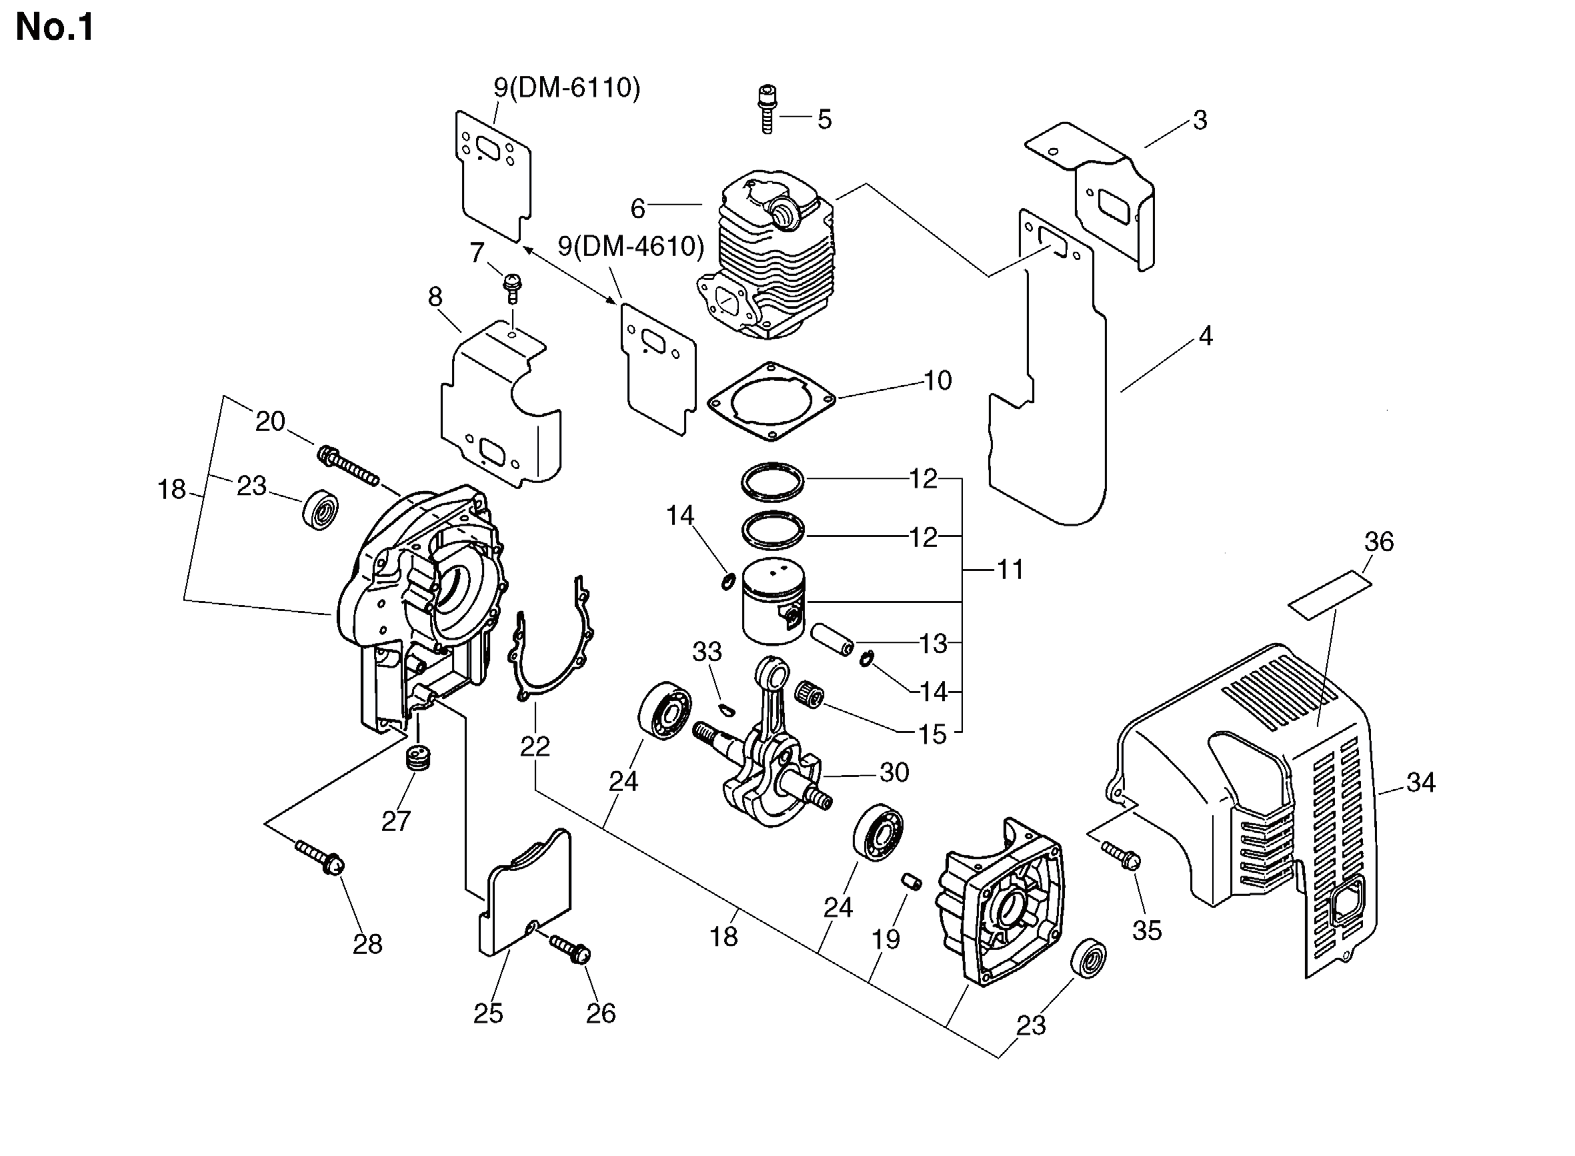 Group:Duster/Mist Blowers Model:DM-4610(SrNr 004334 and before) Section:Cylinder, Crankcase, Piston Group:Duster/Mist Blowers Model:DM-4610(SrNr 004334 and before) Section:Dust